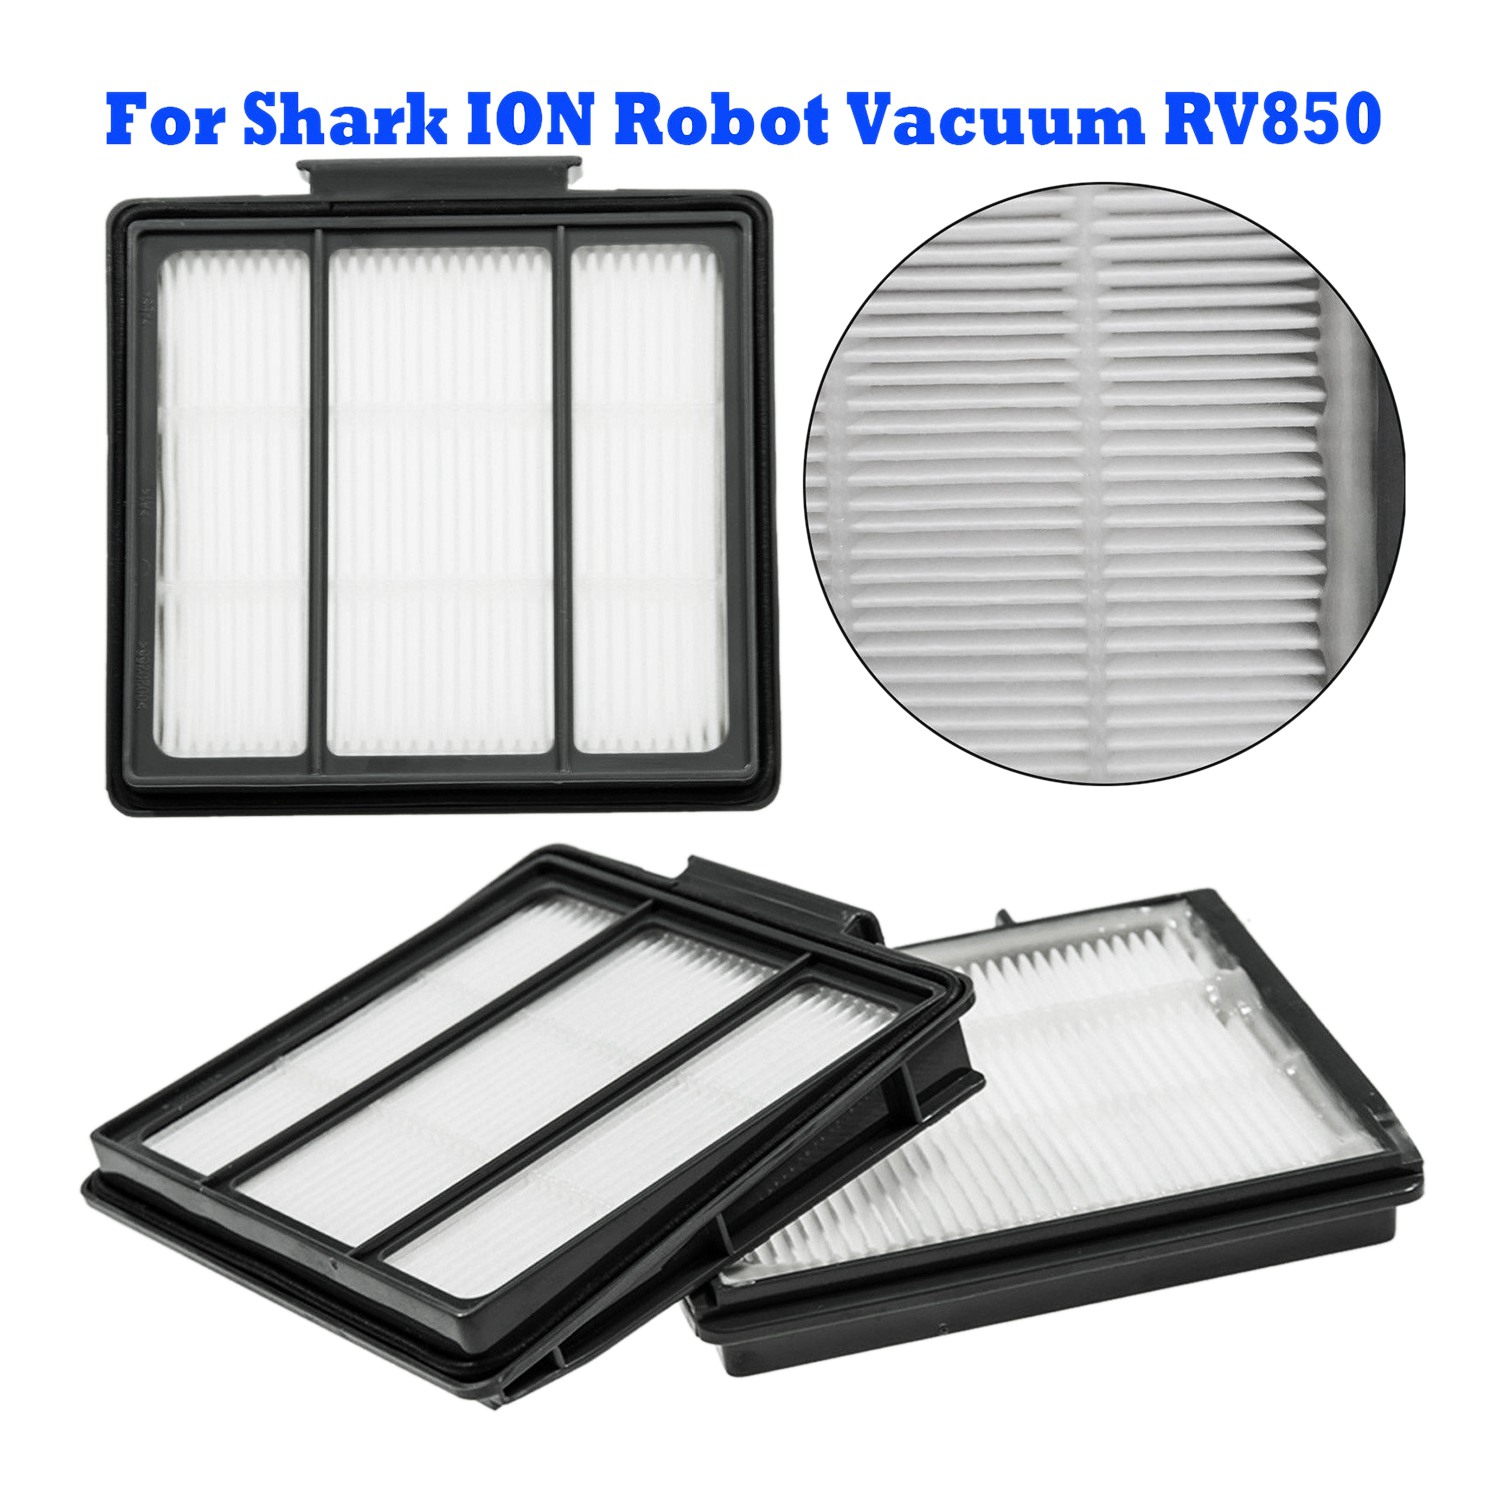 Home Appliances Dutiful Vacuum Cleaner Hepa Filter Kit Replacement For Shark Ion Robot Vacuum Rv850 With Wlan